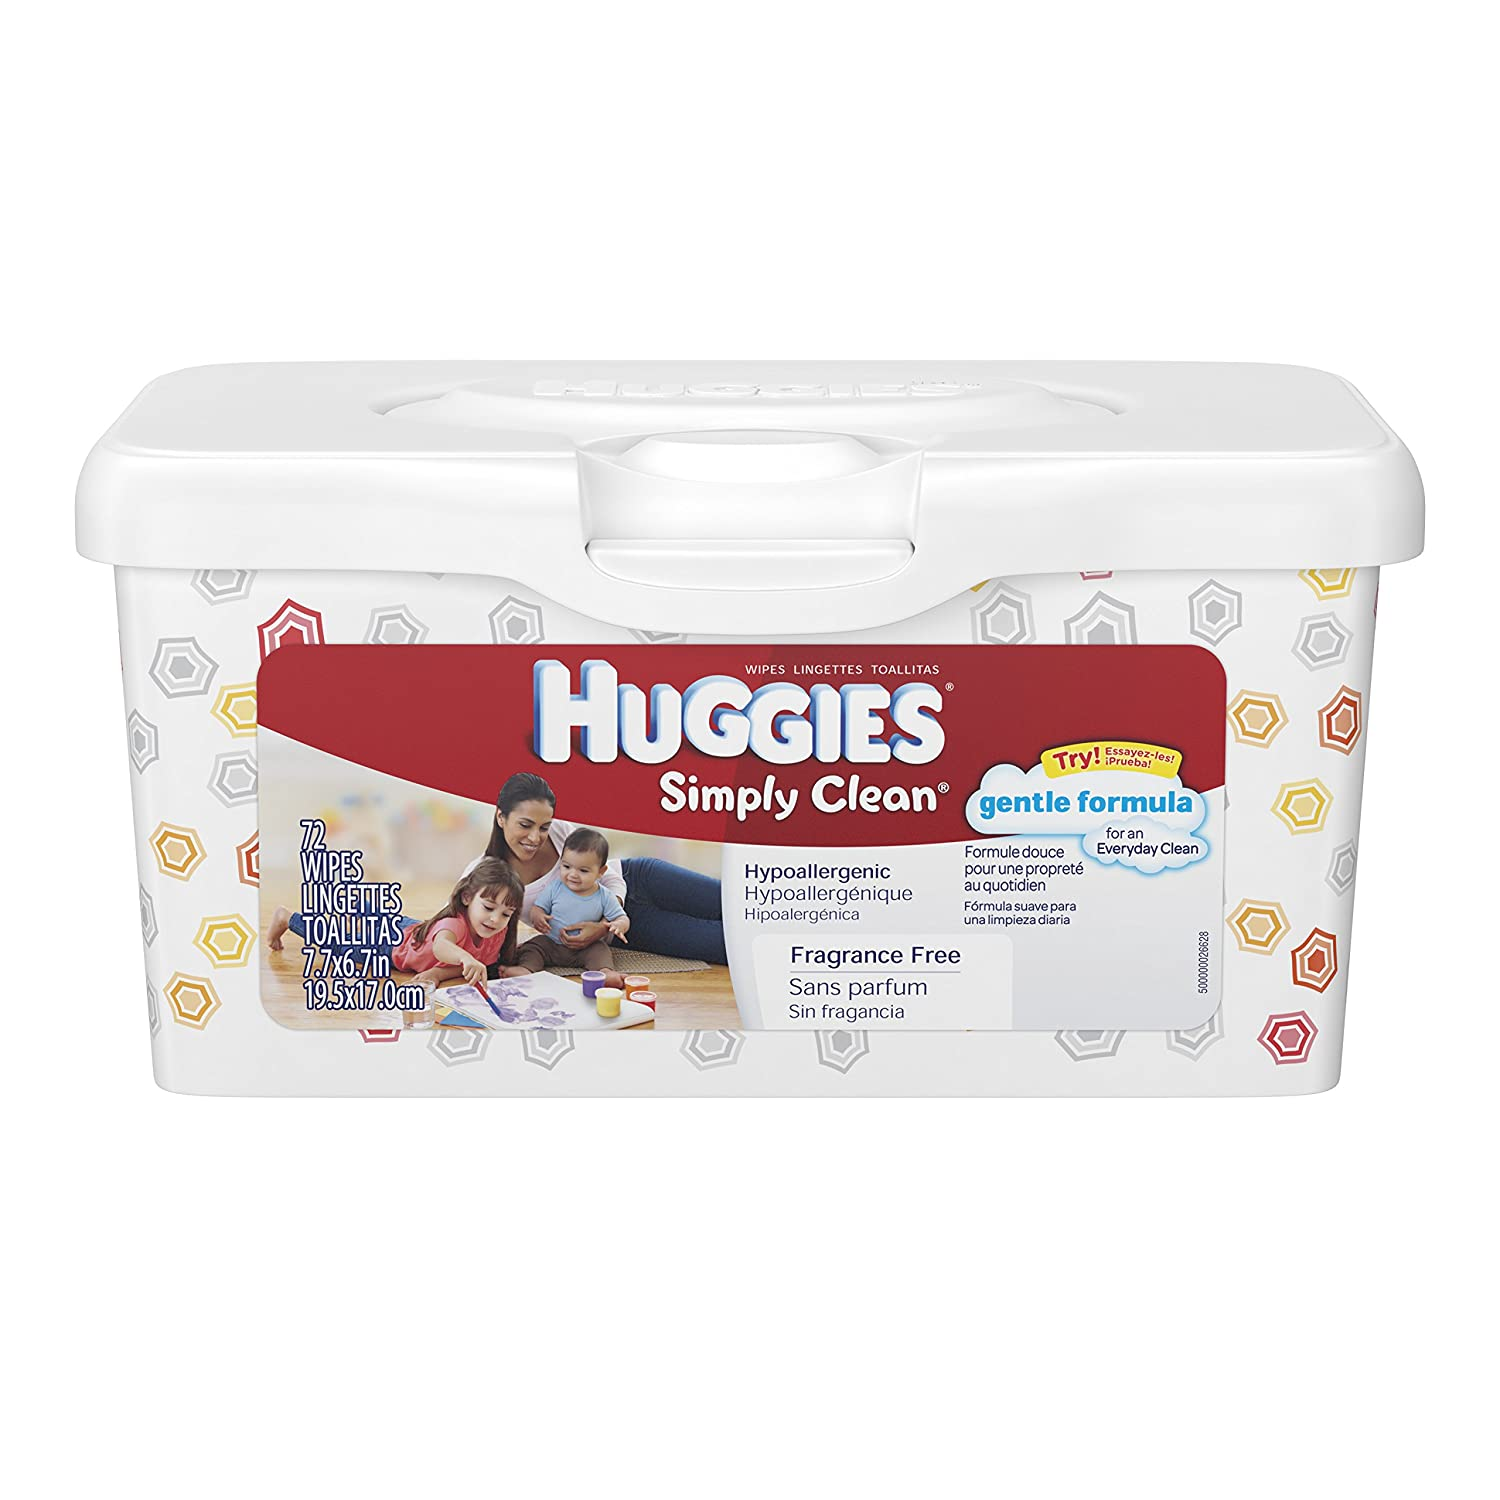 Huggies Simply Clean Baby Wipes, Pop-Up Tub, 72 ct: Amazon.com: Grocery & Gourmet Food